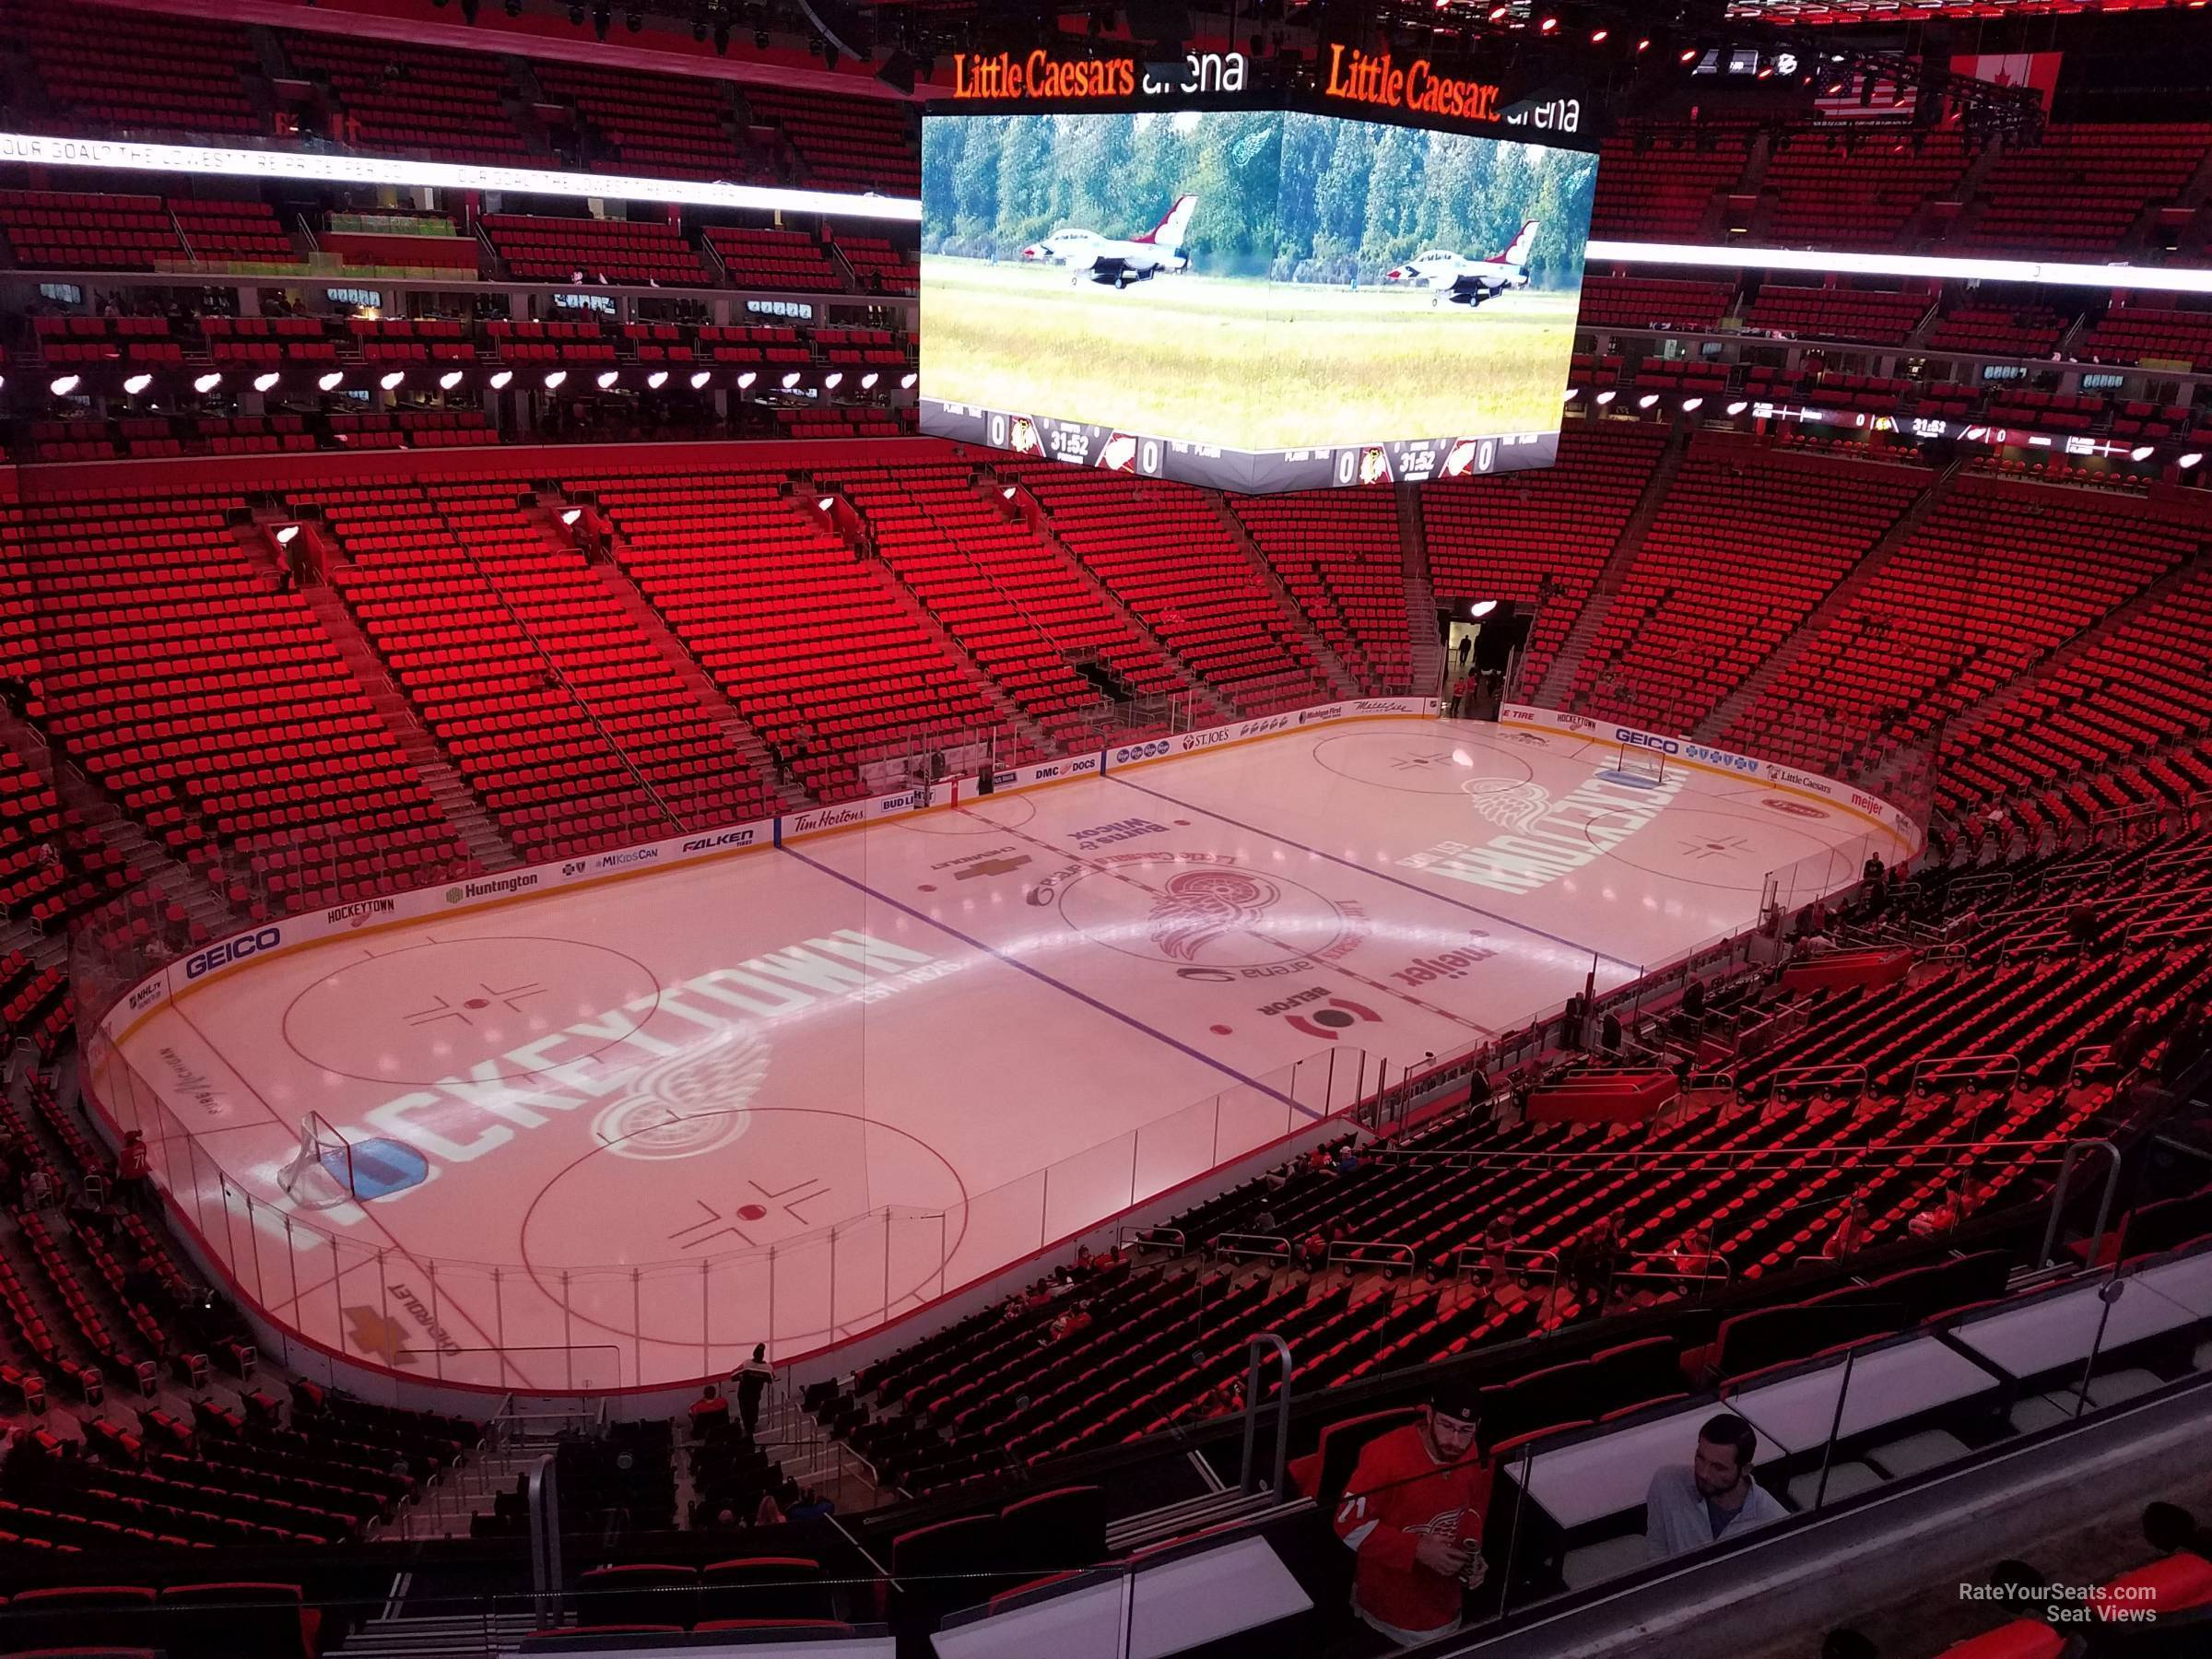 7f7f8fdca63 Detroit Red Wings Seat View for Little Caesars Arena Mezzanine 33